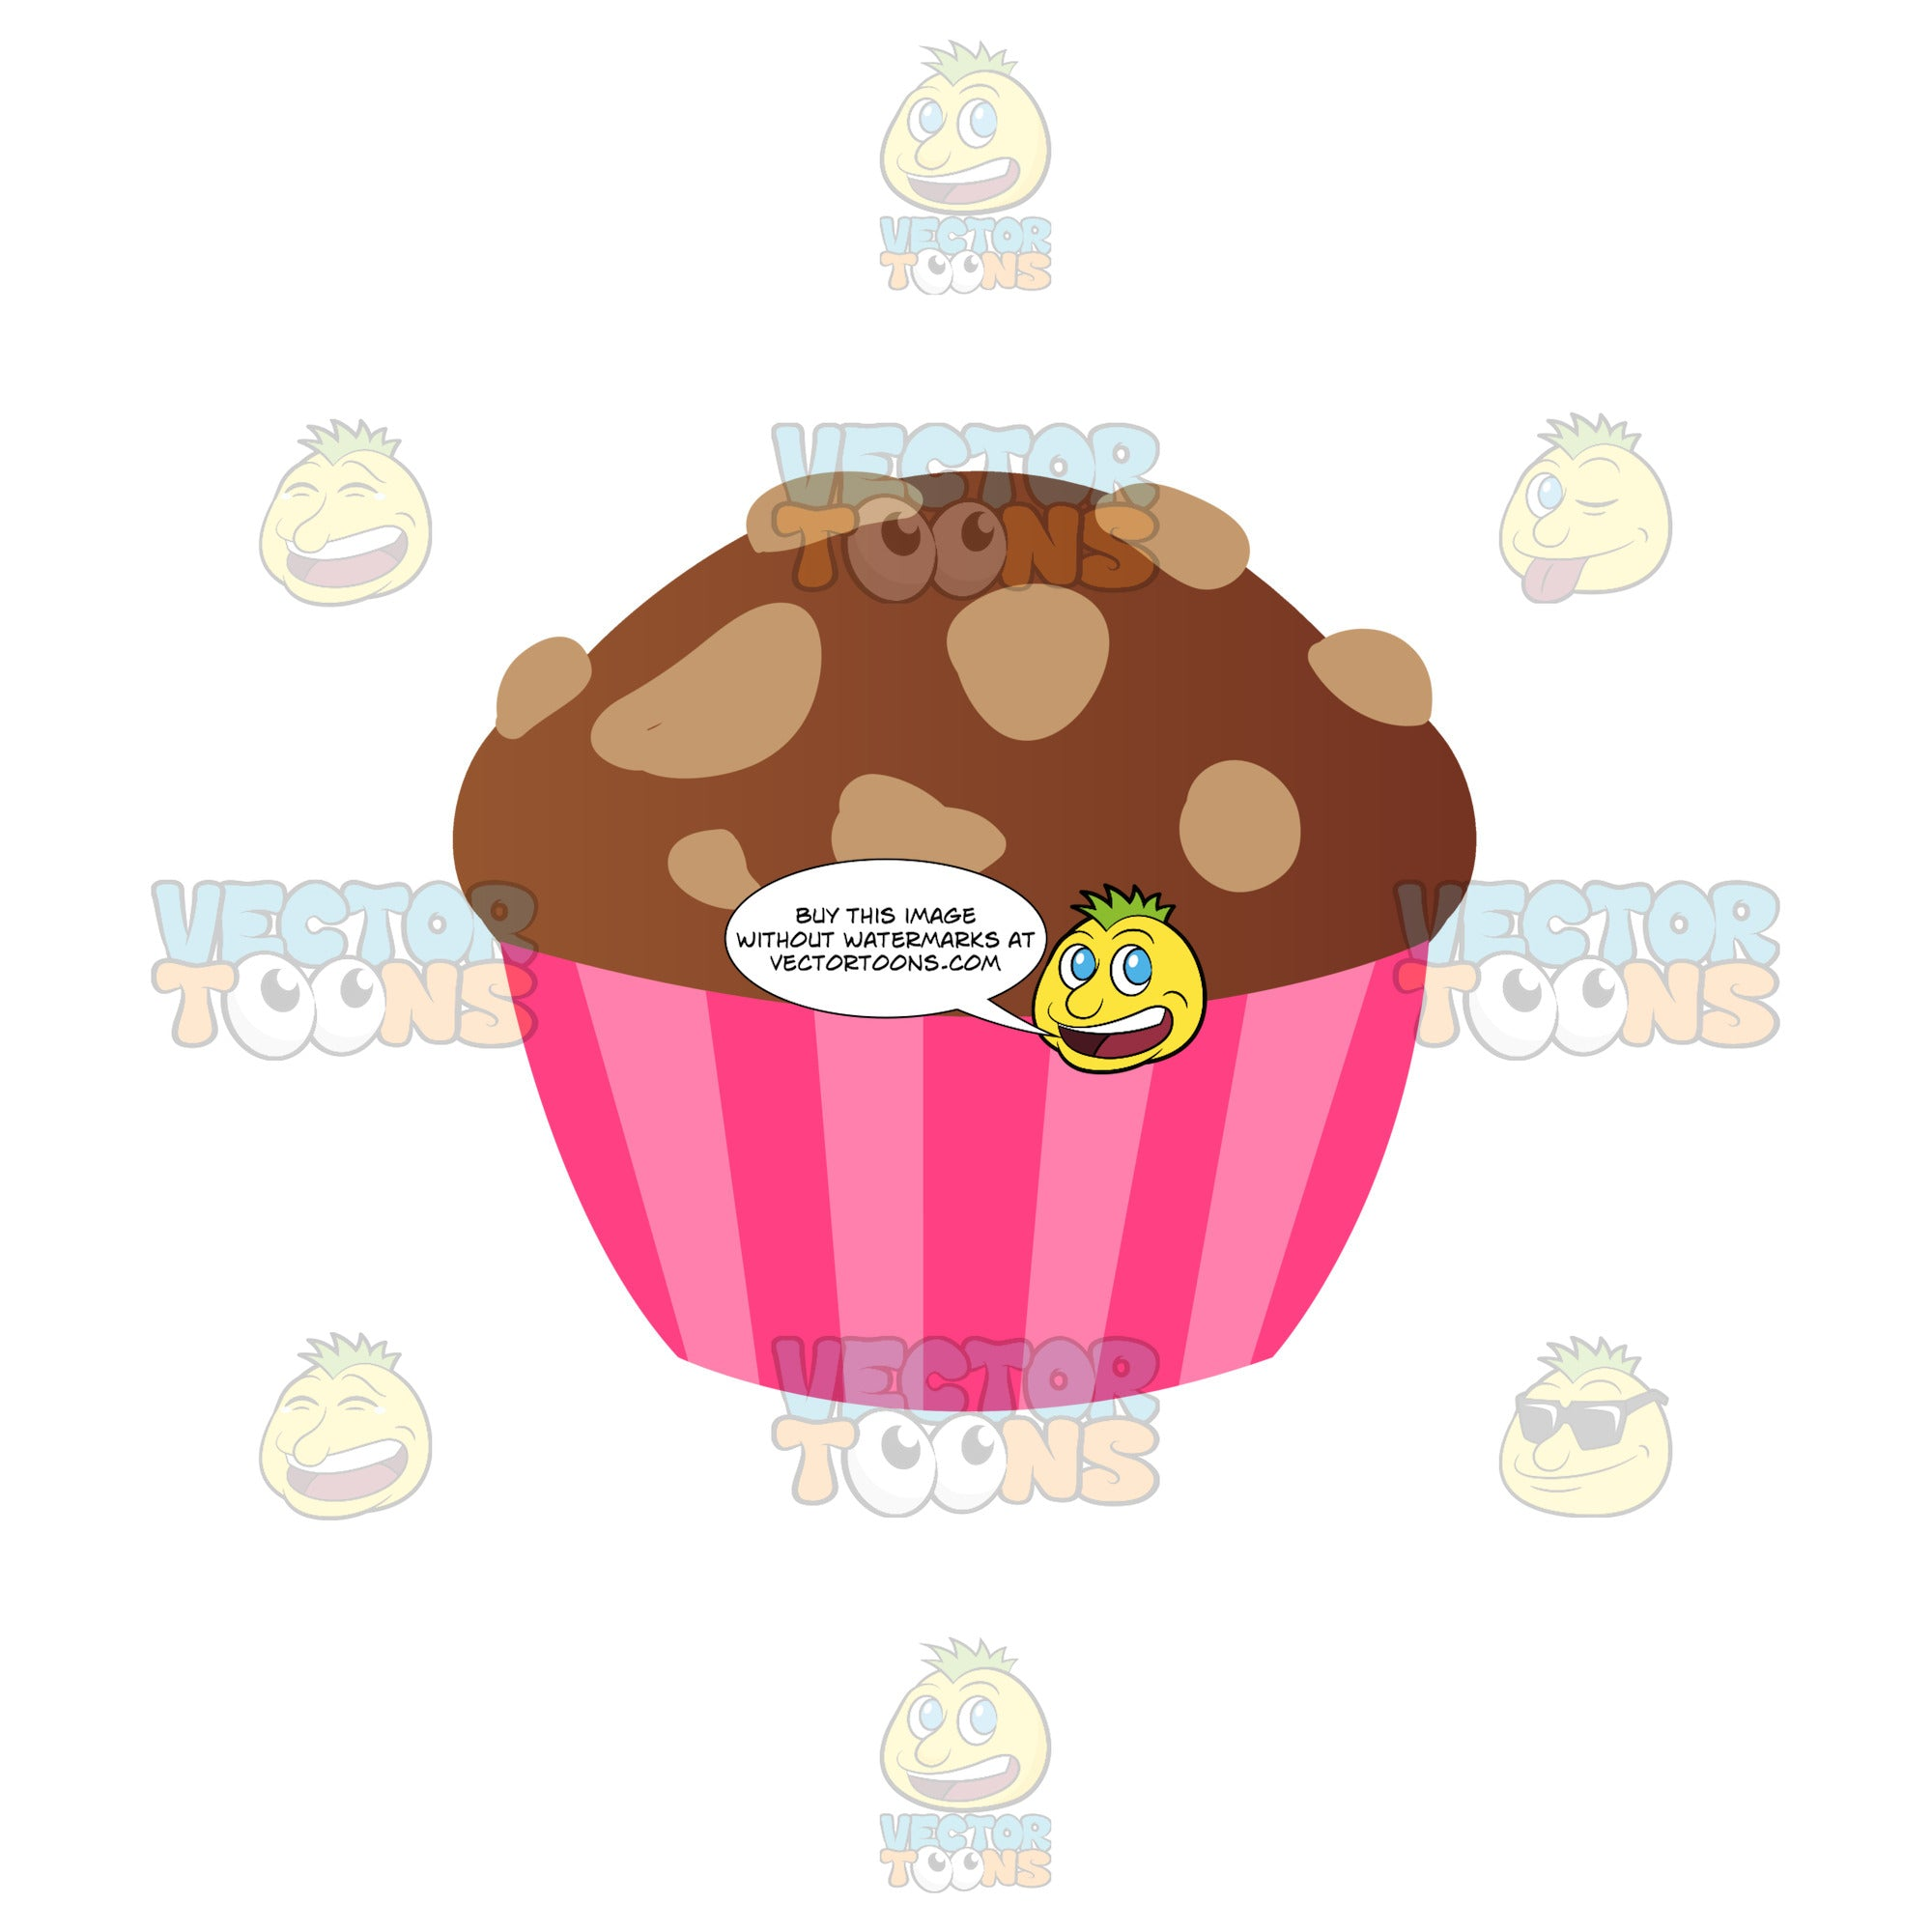 Chocolate Cupcake With Nuts On Top